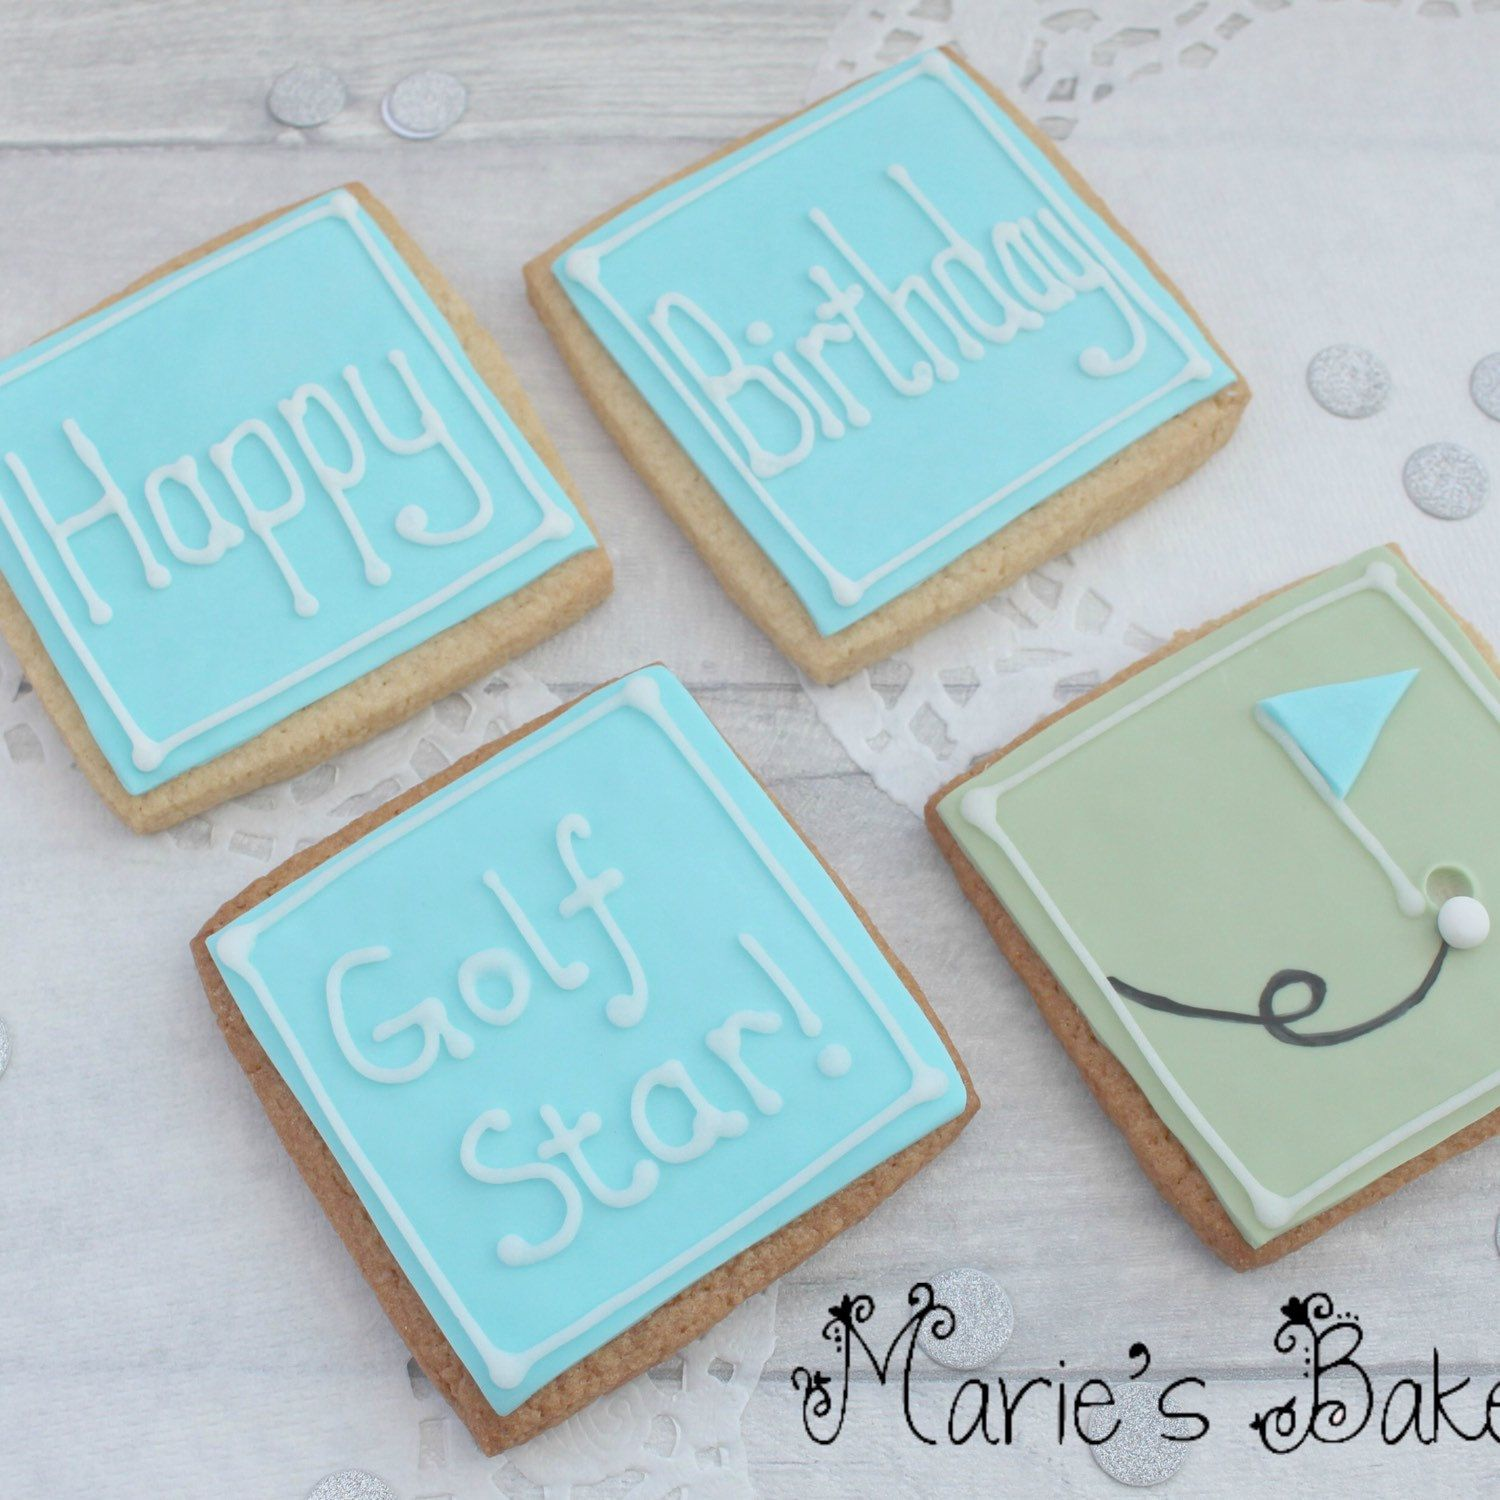 Golf cookies birthday gift cookies gift for golf fanbirthday